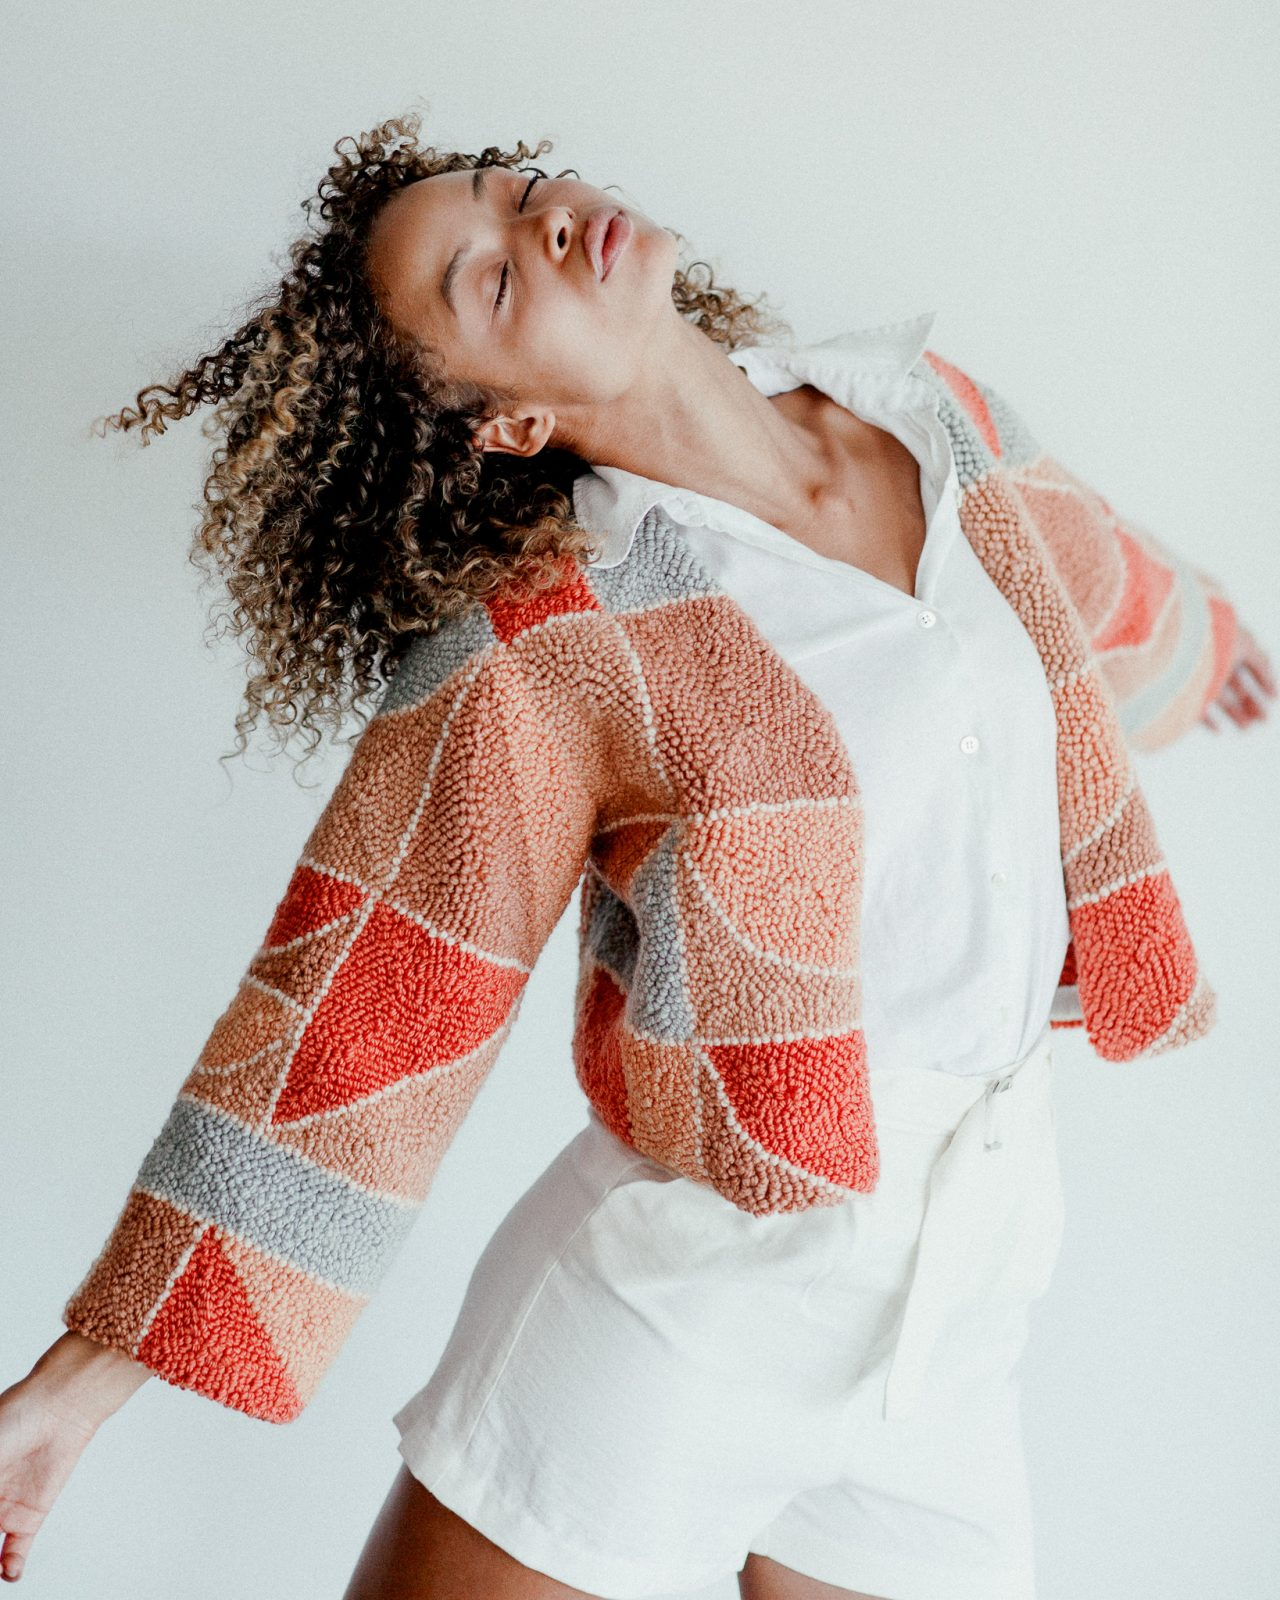 Micah Clasper- Torch Needle Punched Jacket Modelled Action Shot Pink Grey Beige